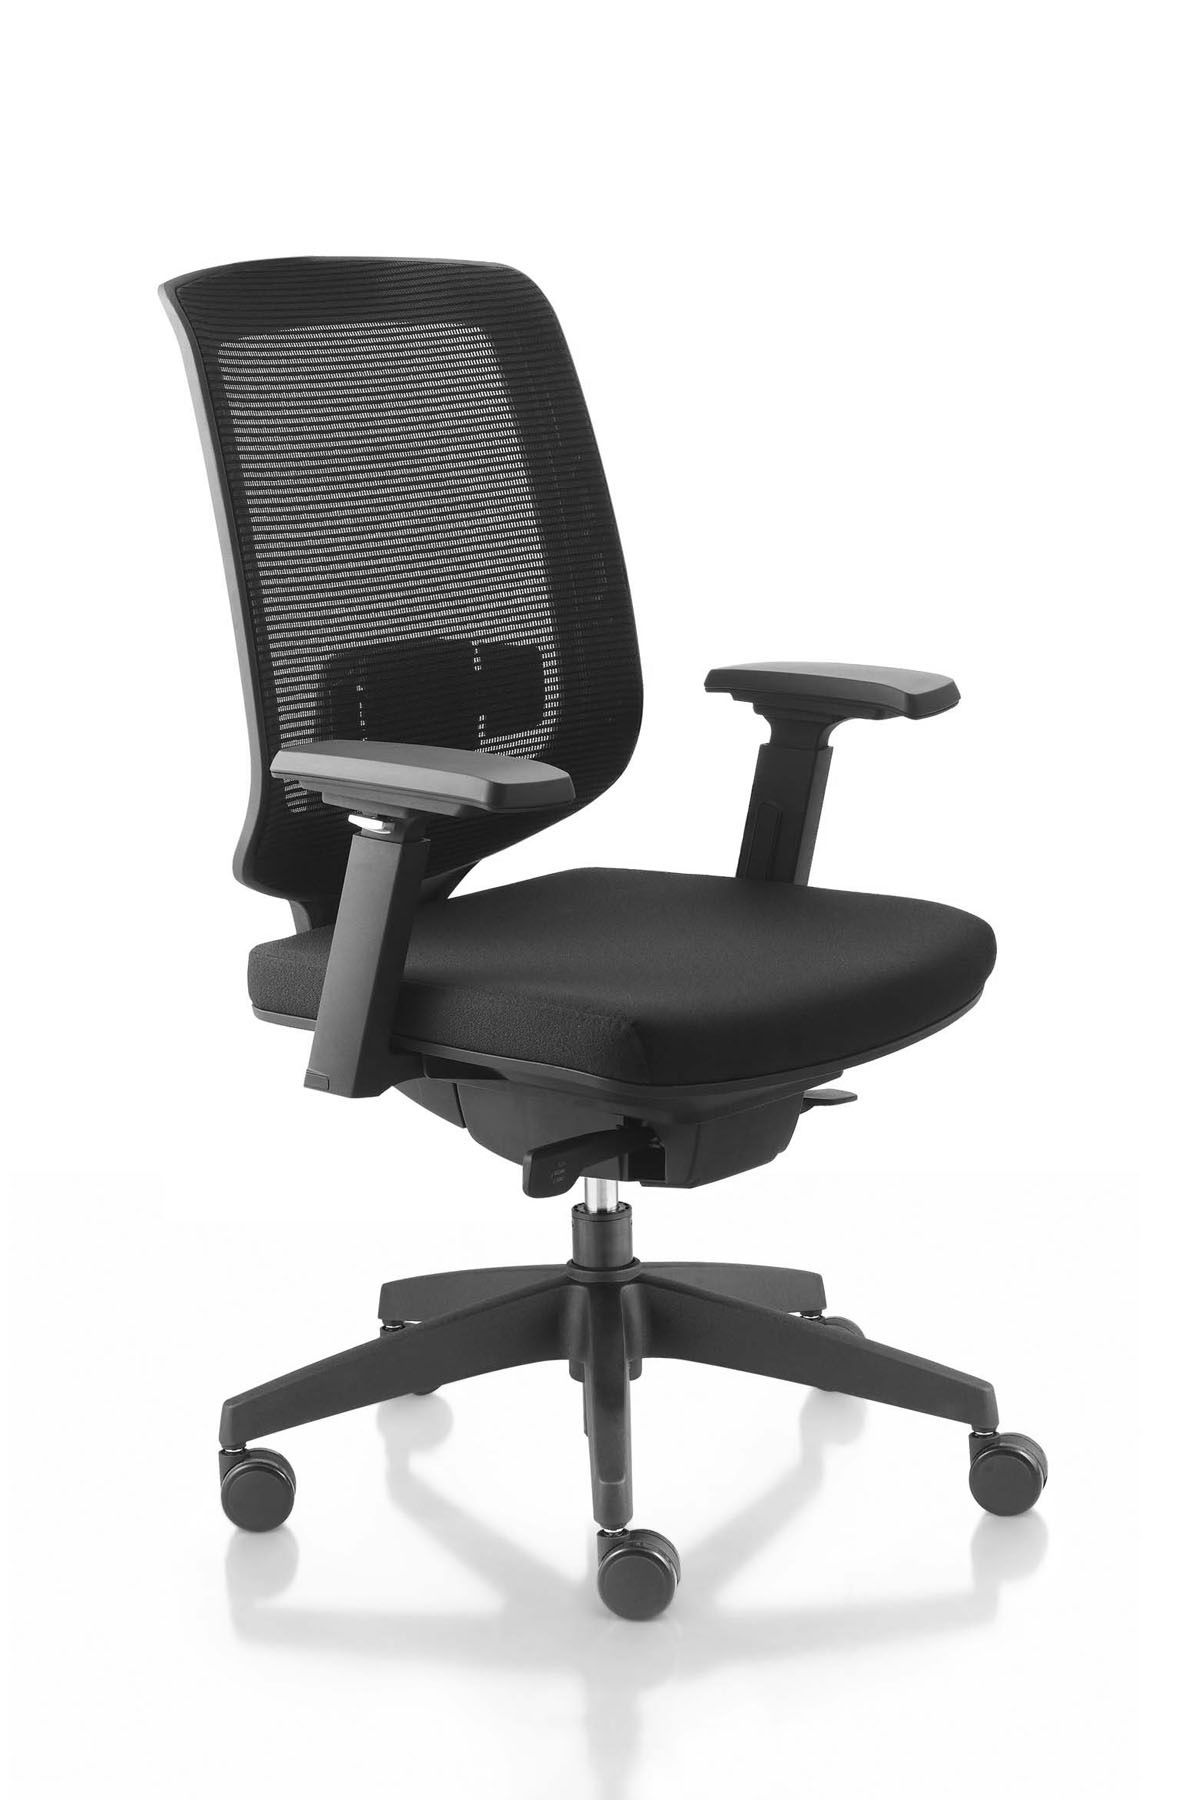 Serta High Back Managers Chair Stunning Luxury Inspiration fice